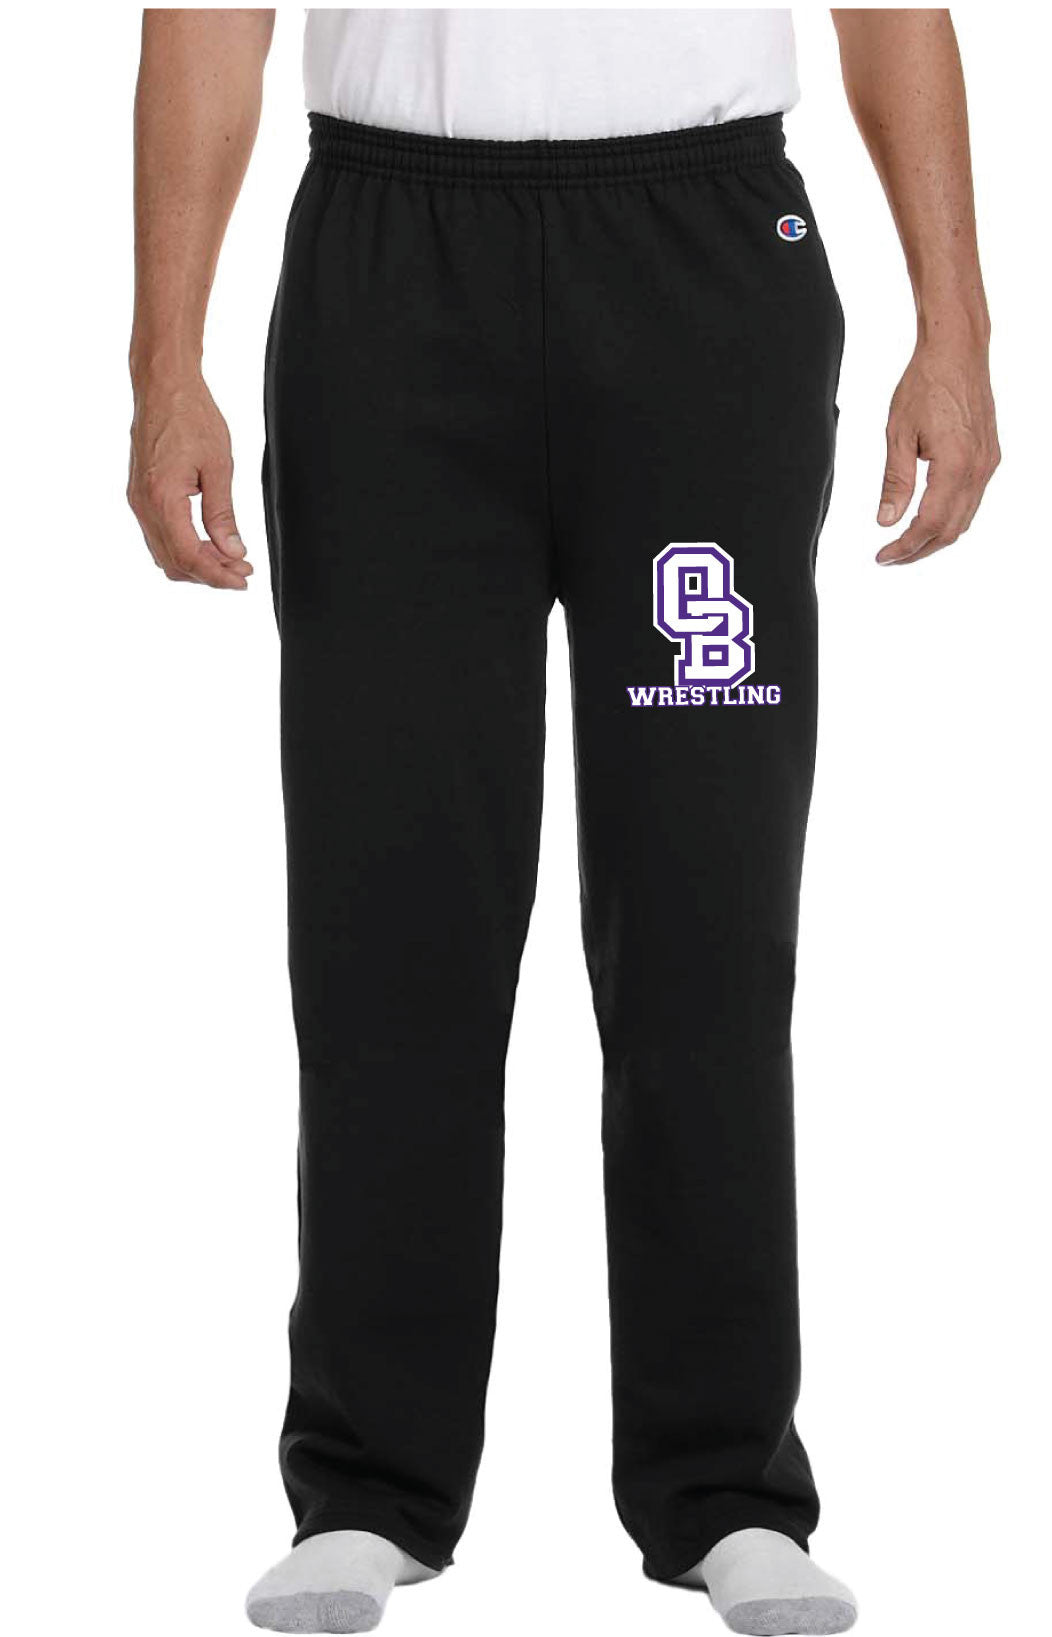 OB Wrestling Practice Sweatpants w/pockets